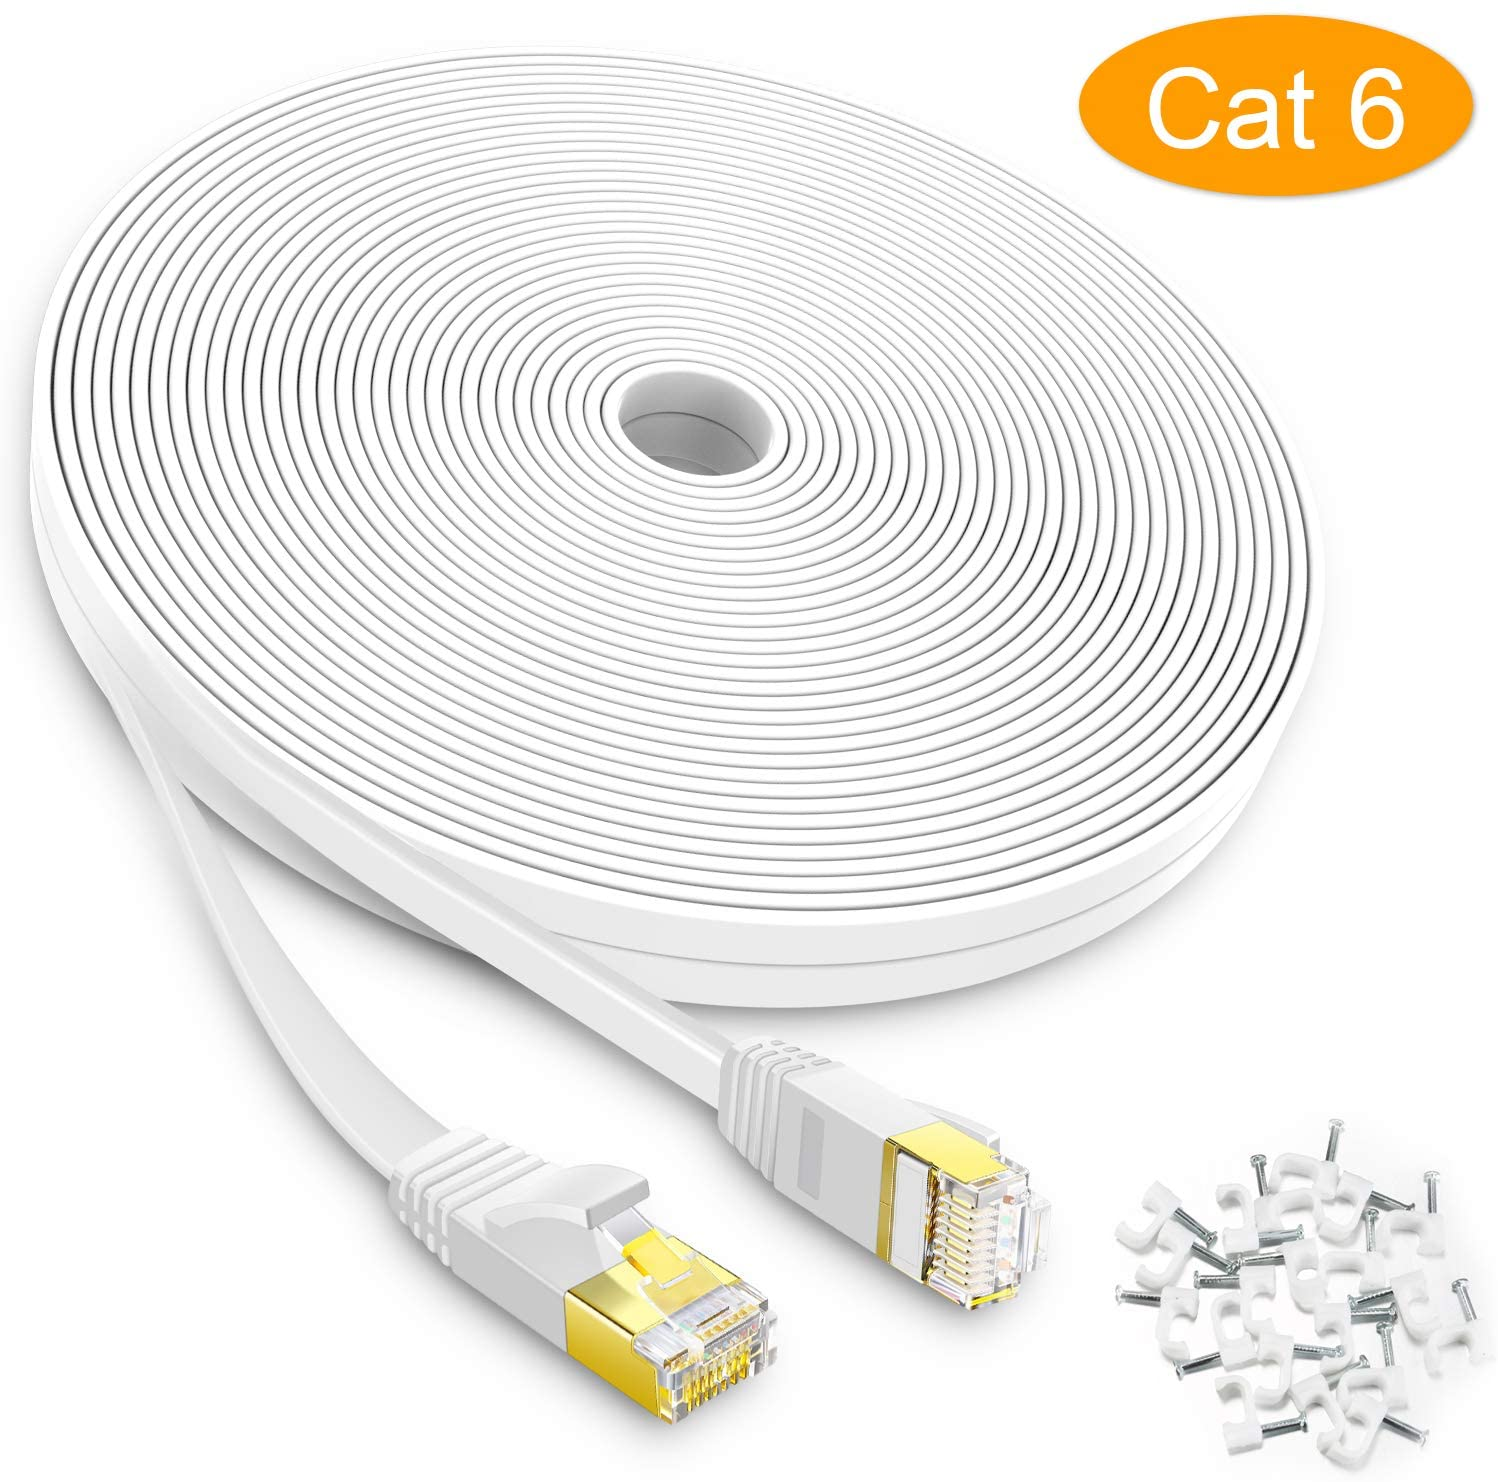 AOFORZ - Ethernet Cable Cat6 50ft - White Flat High Speed Internet Network Cable with Cable Clips - Computer Cable with Snagless Rj45 Connectors - 50 feet White (15 Meters)